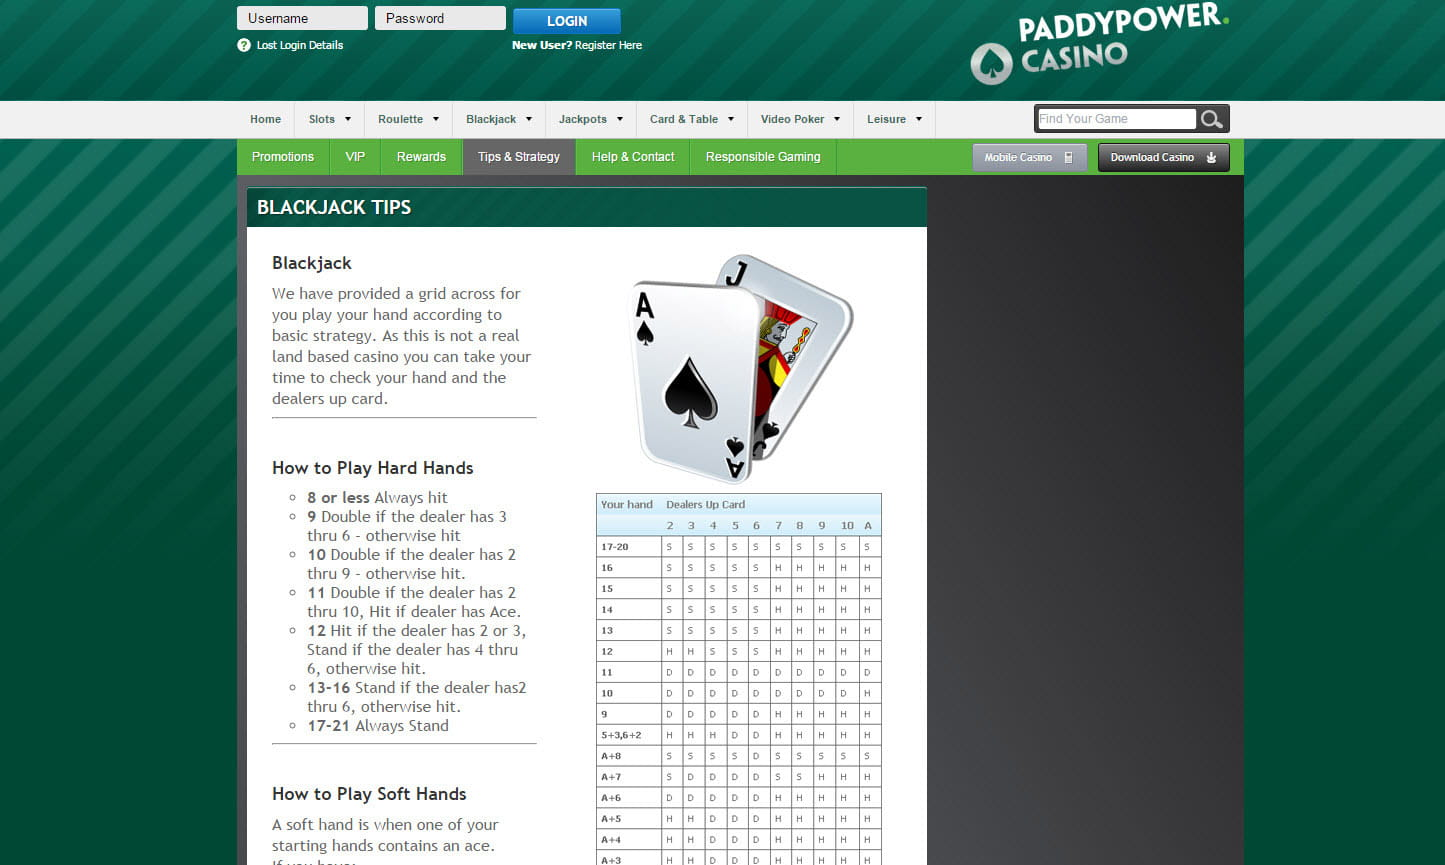 How to Play Blackjack Tips and Guidelines